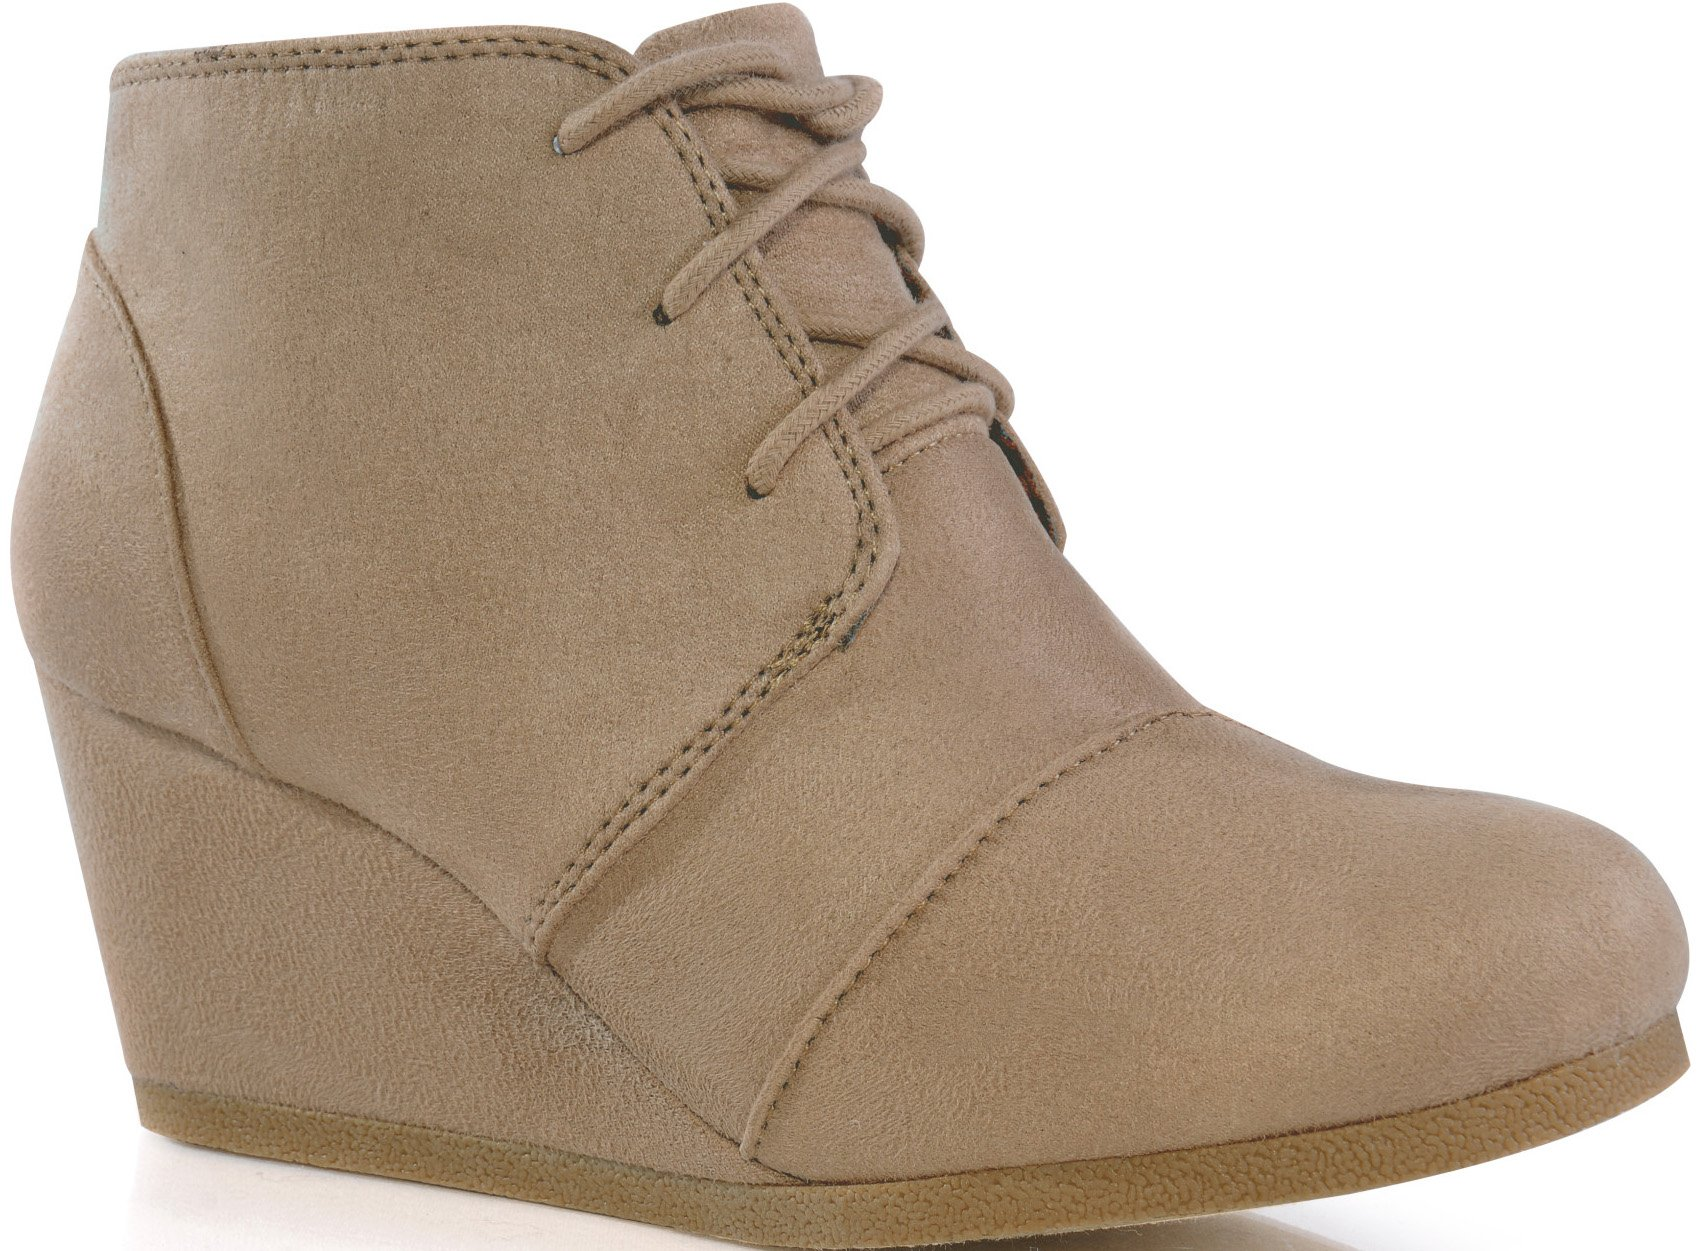 MARCOREPUBLIC Galaxy Womens Wedge Boots - (Taupe) - 10 by MARCOREPUBLIC (Image #2)